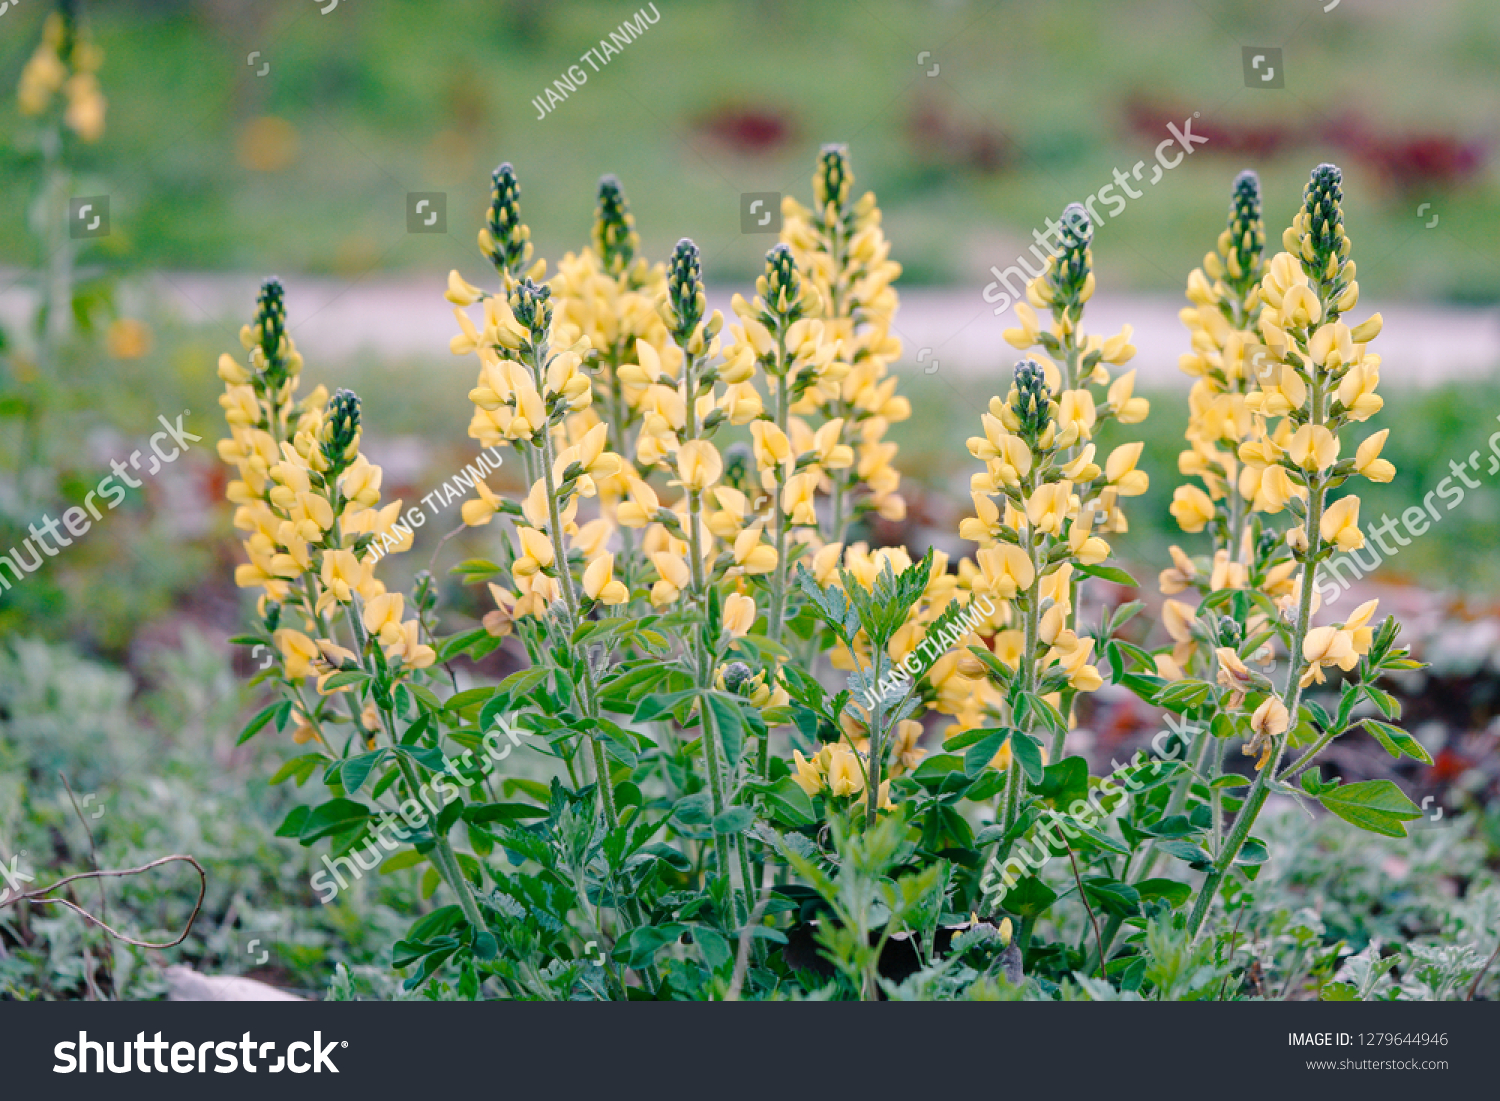 Thermopsis Images Stock Photos Vectors Shutterstock